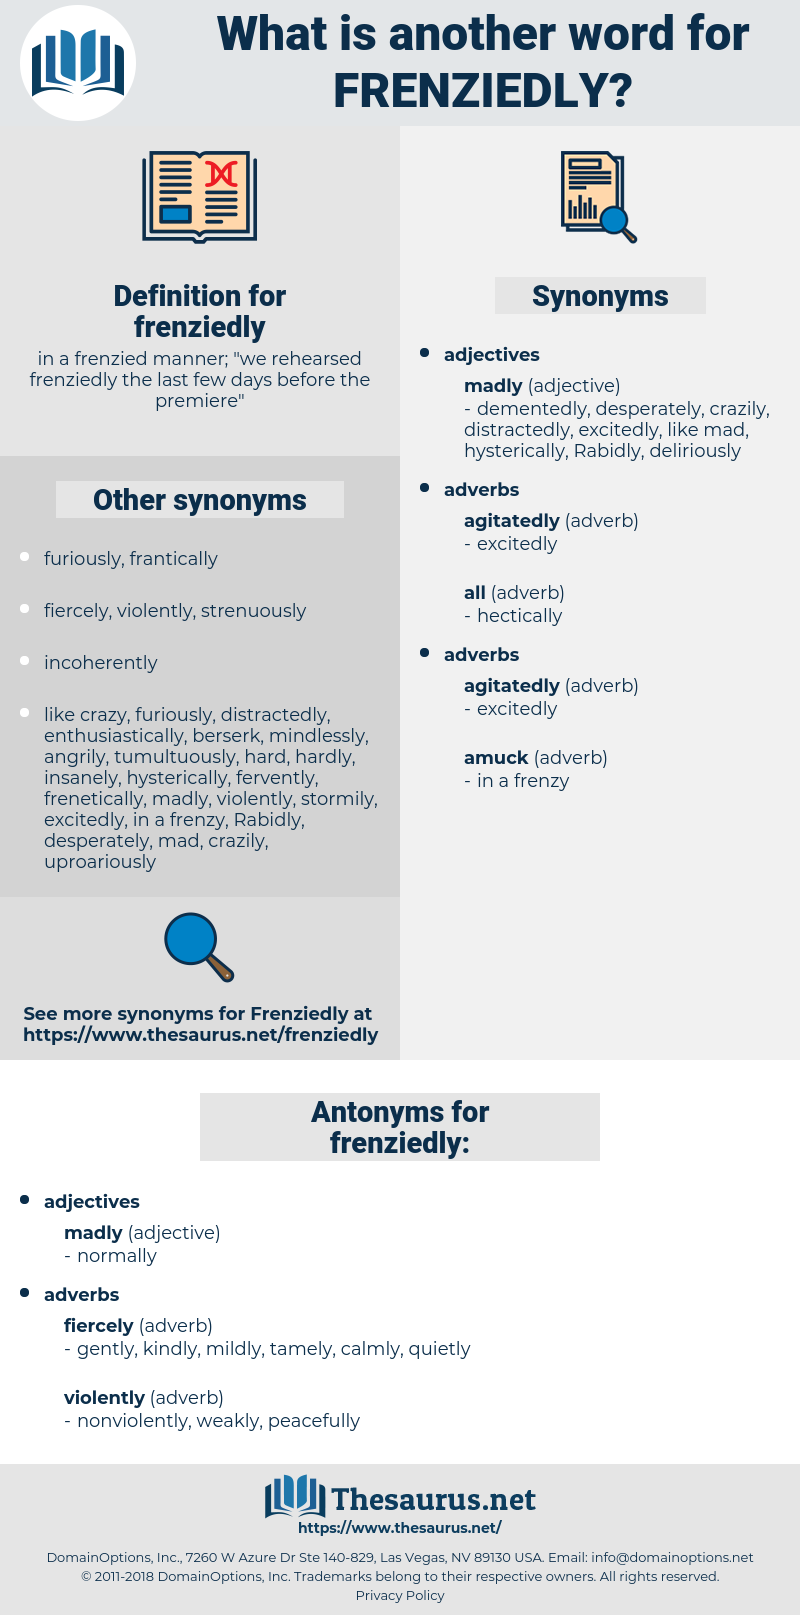 frenziedly, synonym frenziedly, another word for frenziedly, words like frenziedly, thesaurus frenziedly